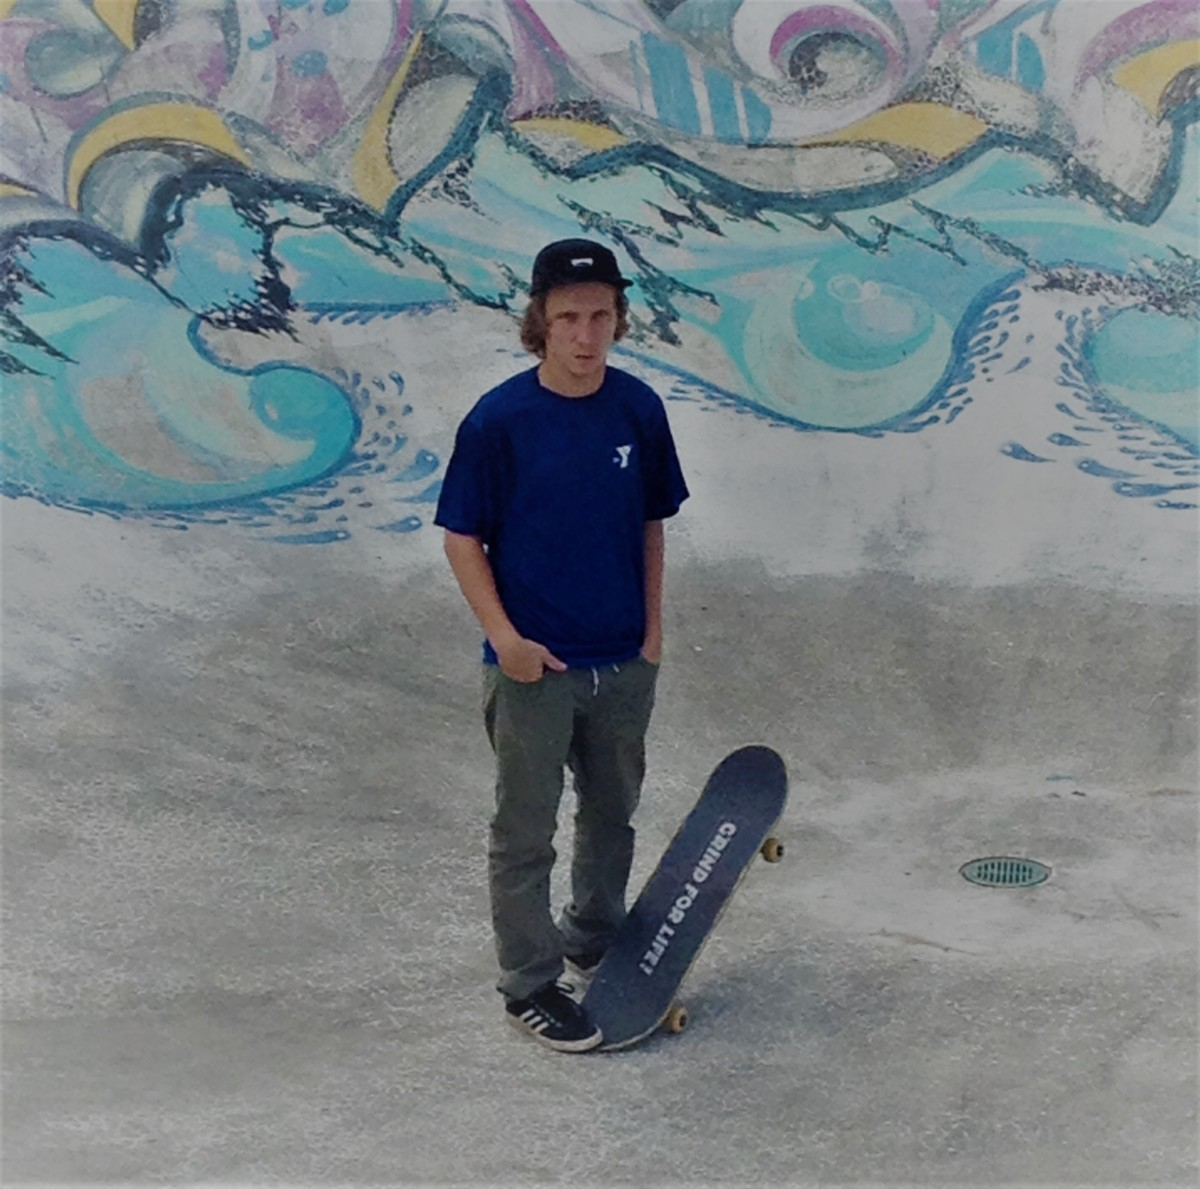 The Positive Side of Skateboarding